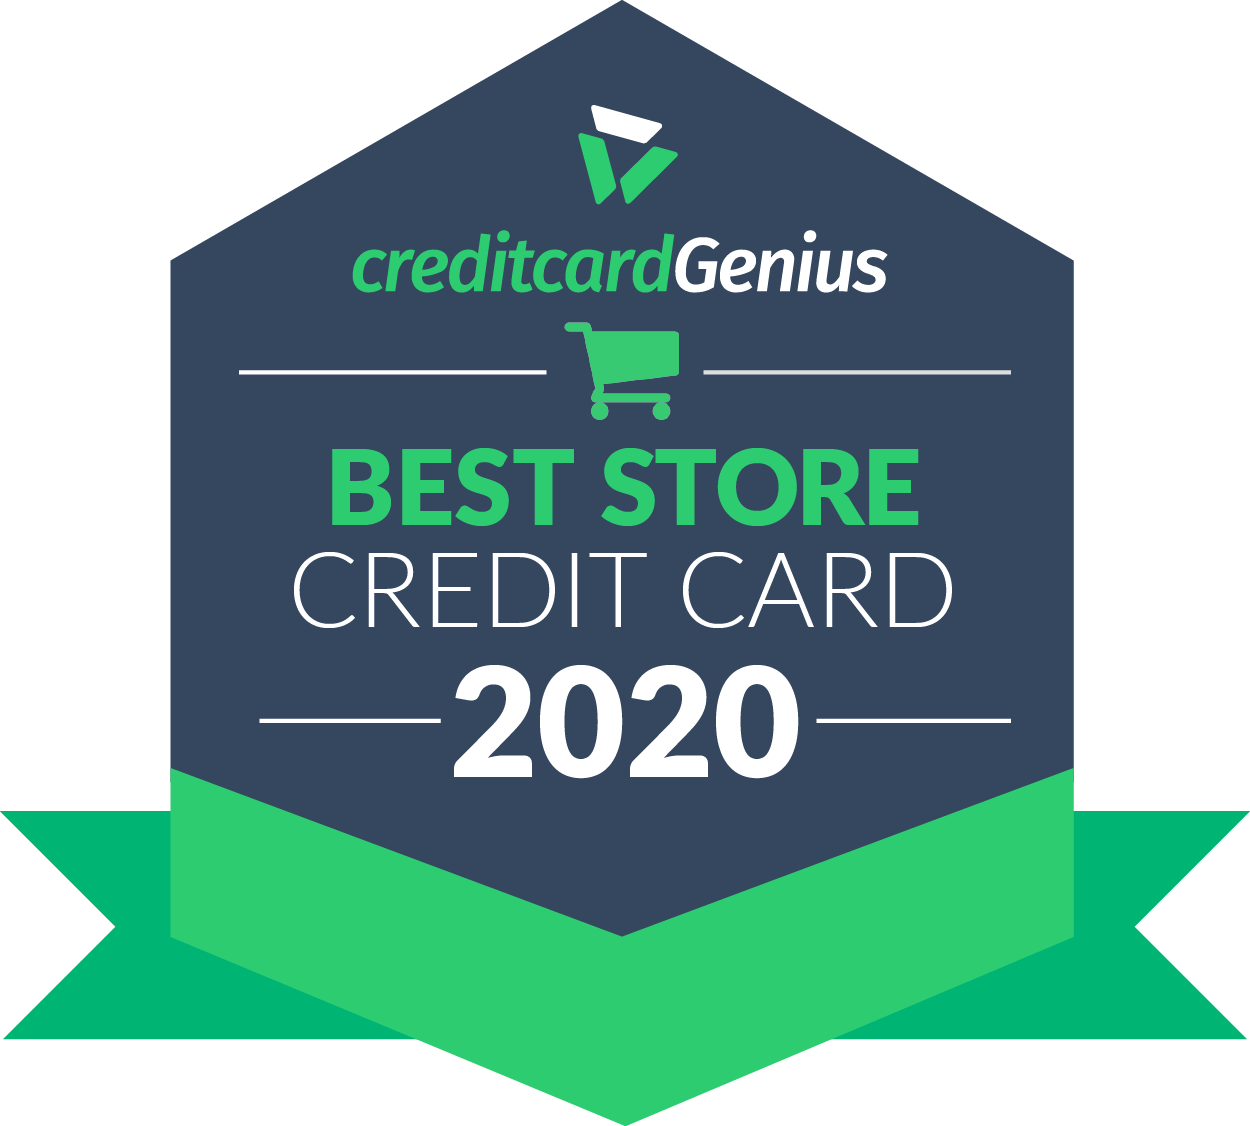 Best store credit card in Canada for 2020 award seal